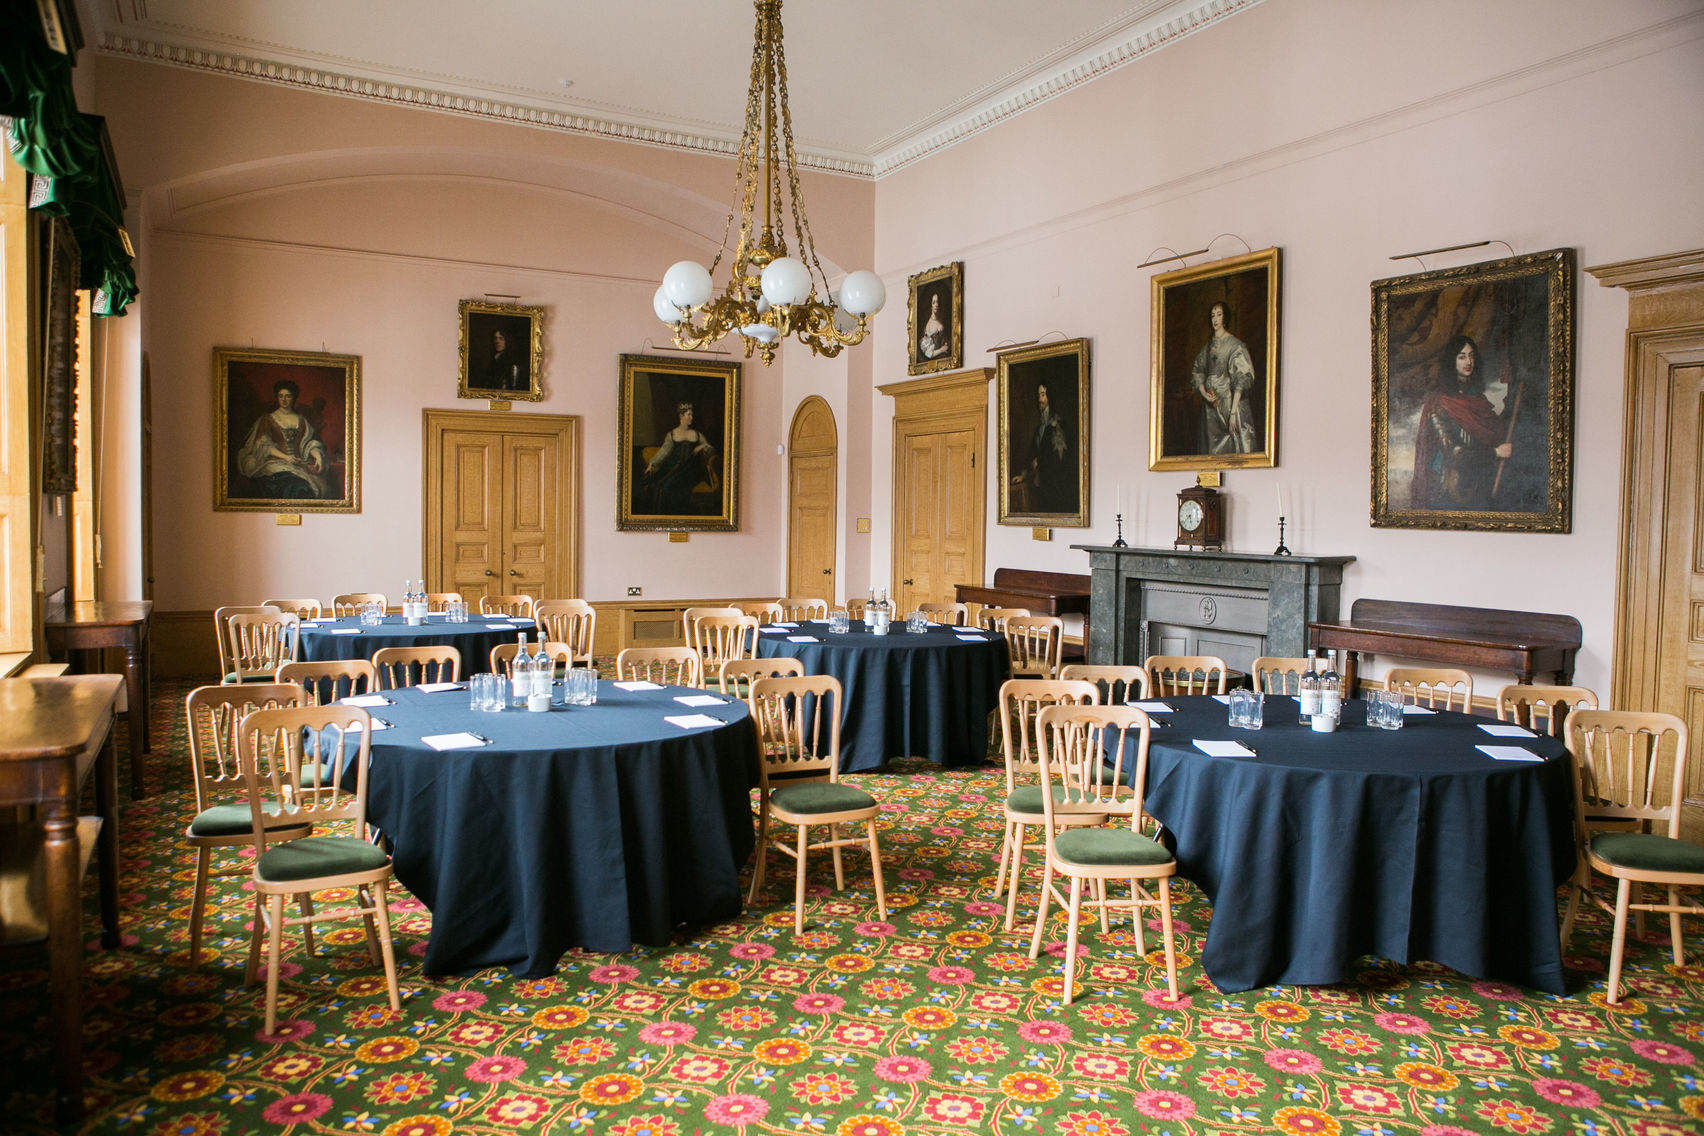 The Judges Dining Room, The Old Shire Hall